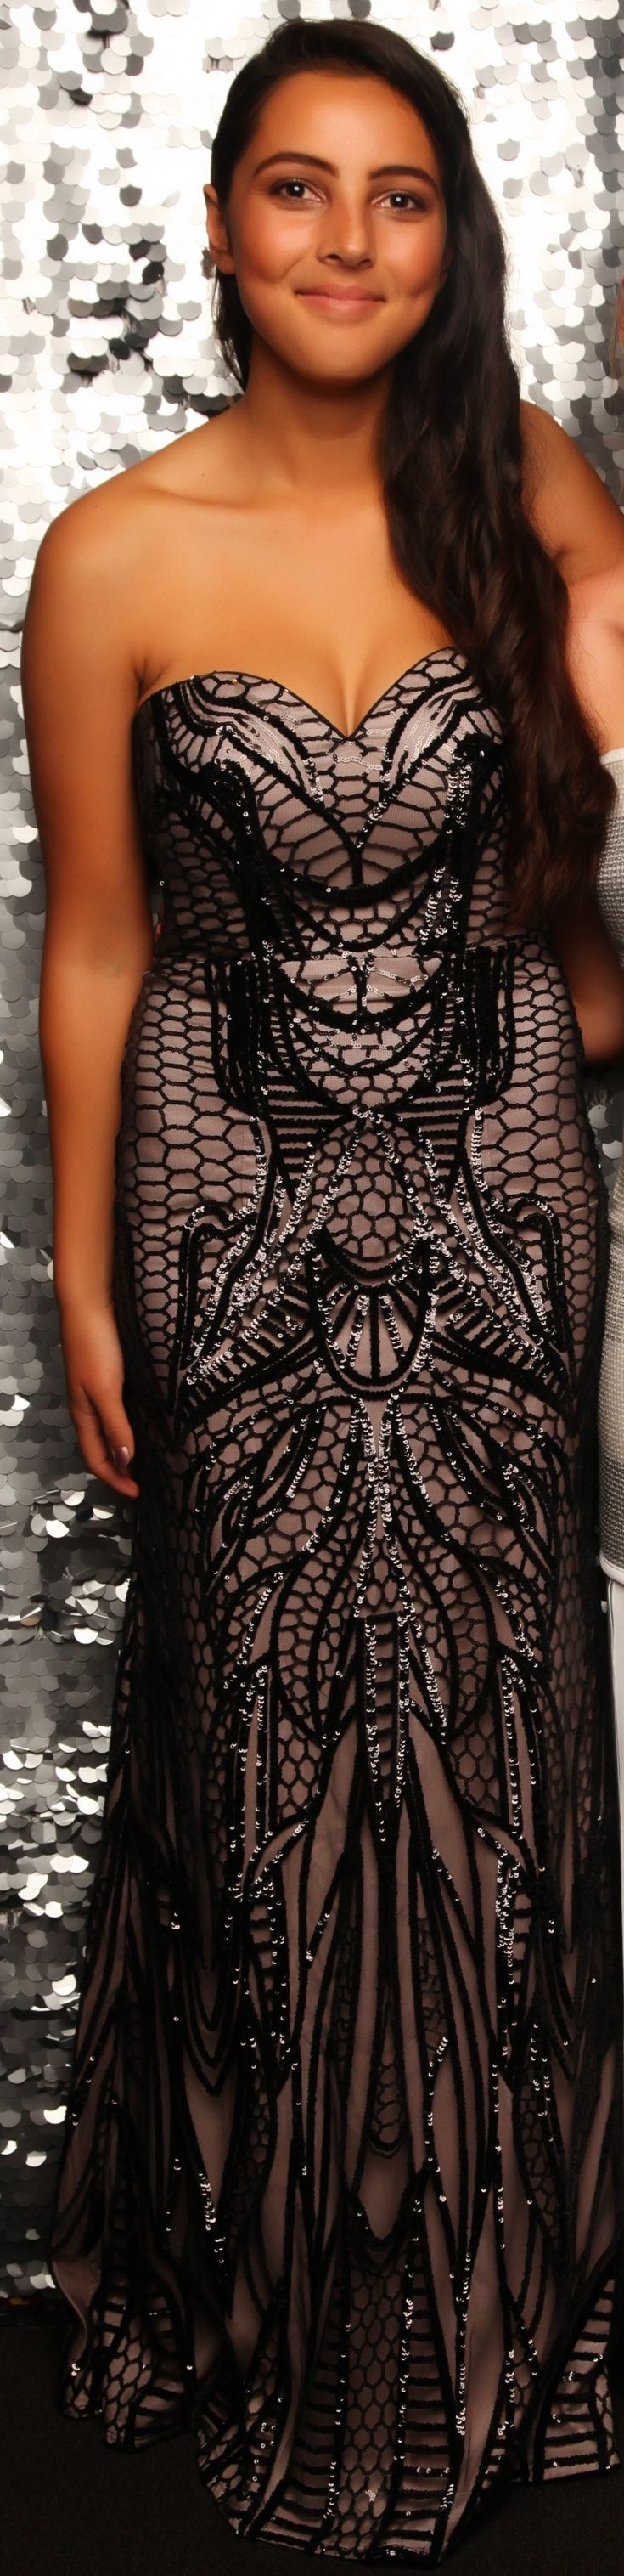 Baradene Ball 2016. How incredible is this gown?! www.whitedoor.co.nz